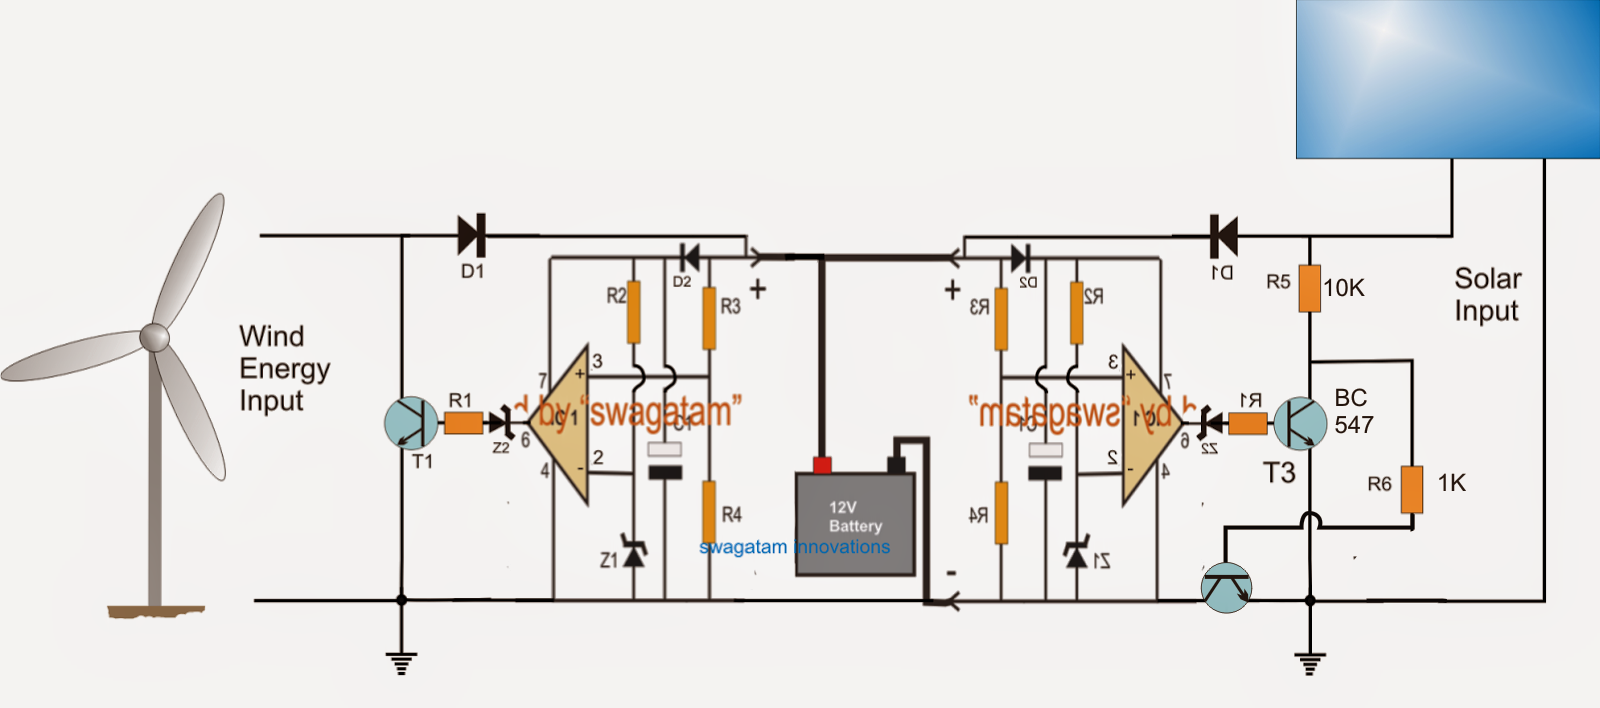 da0600fff373f19227caf6aa3c9ee798 two input solar wind hybrid battery charger circuit proyek untuk wind turbine charge controller wiring diagram at fashall.co